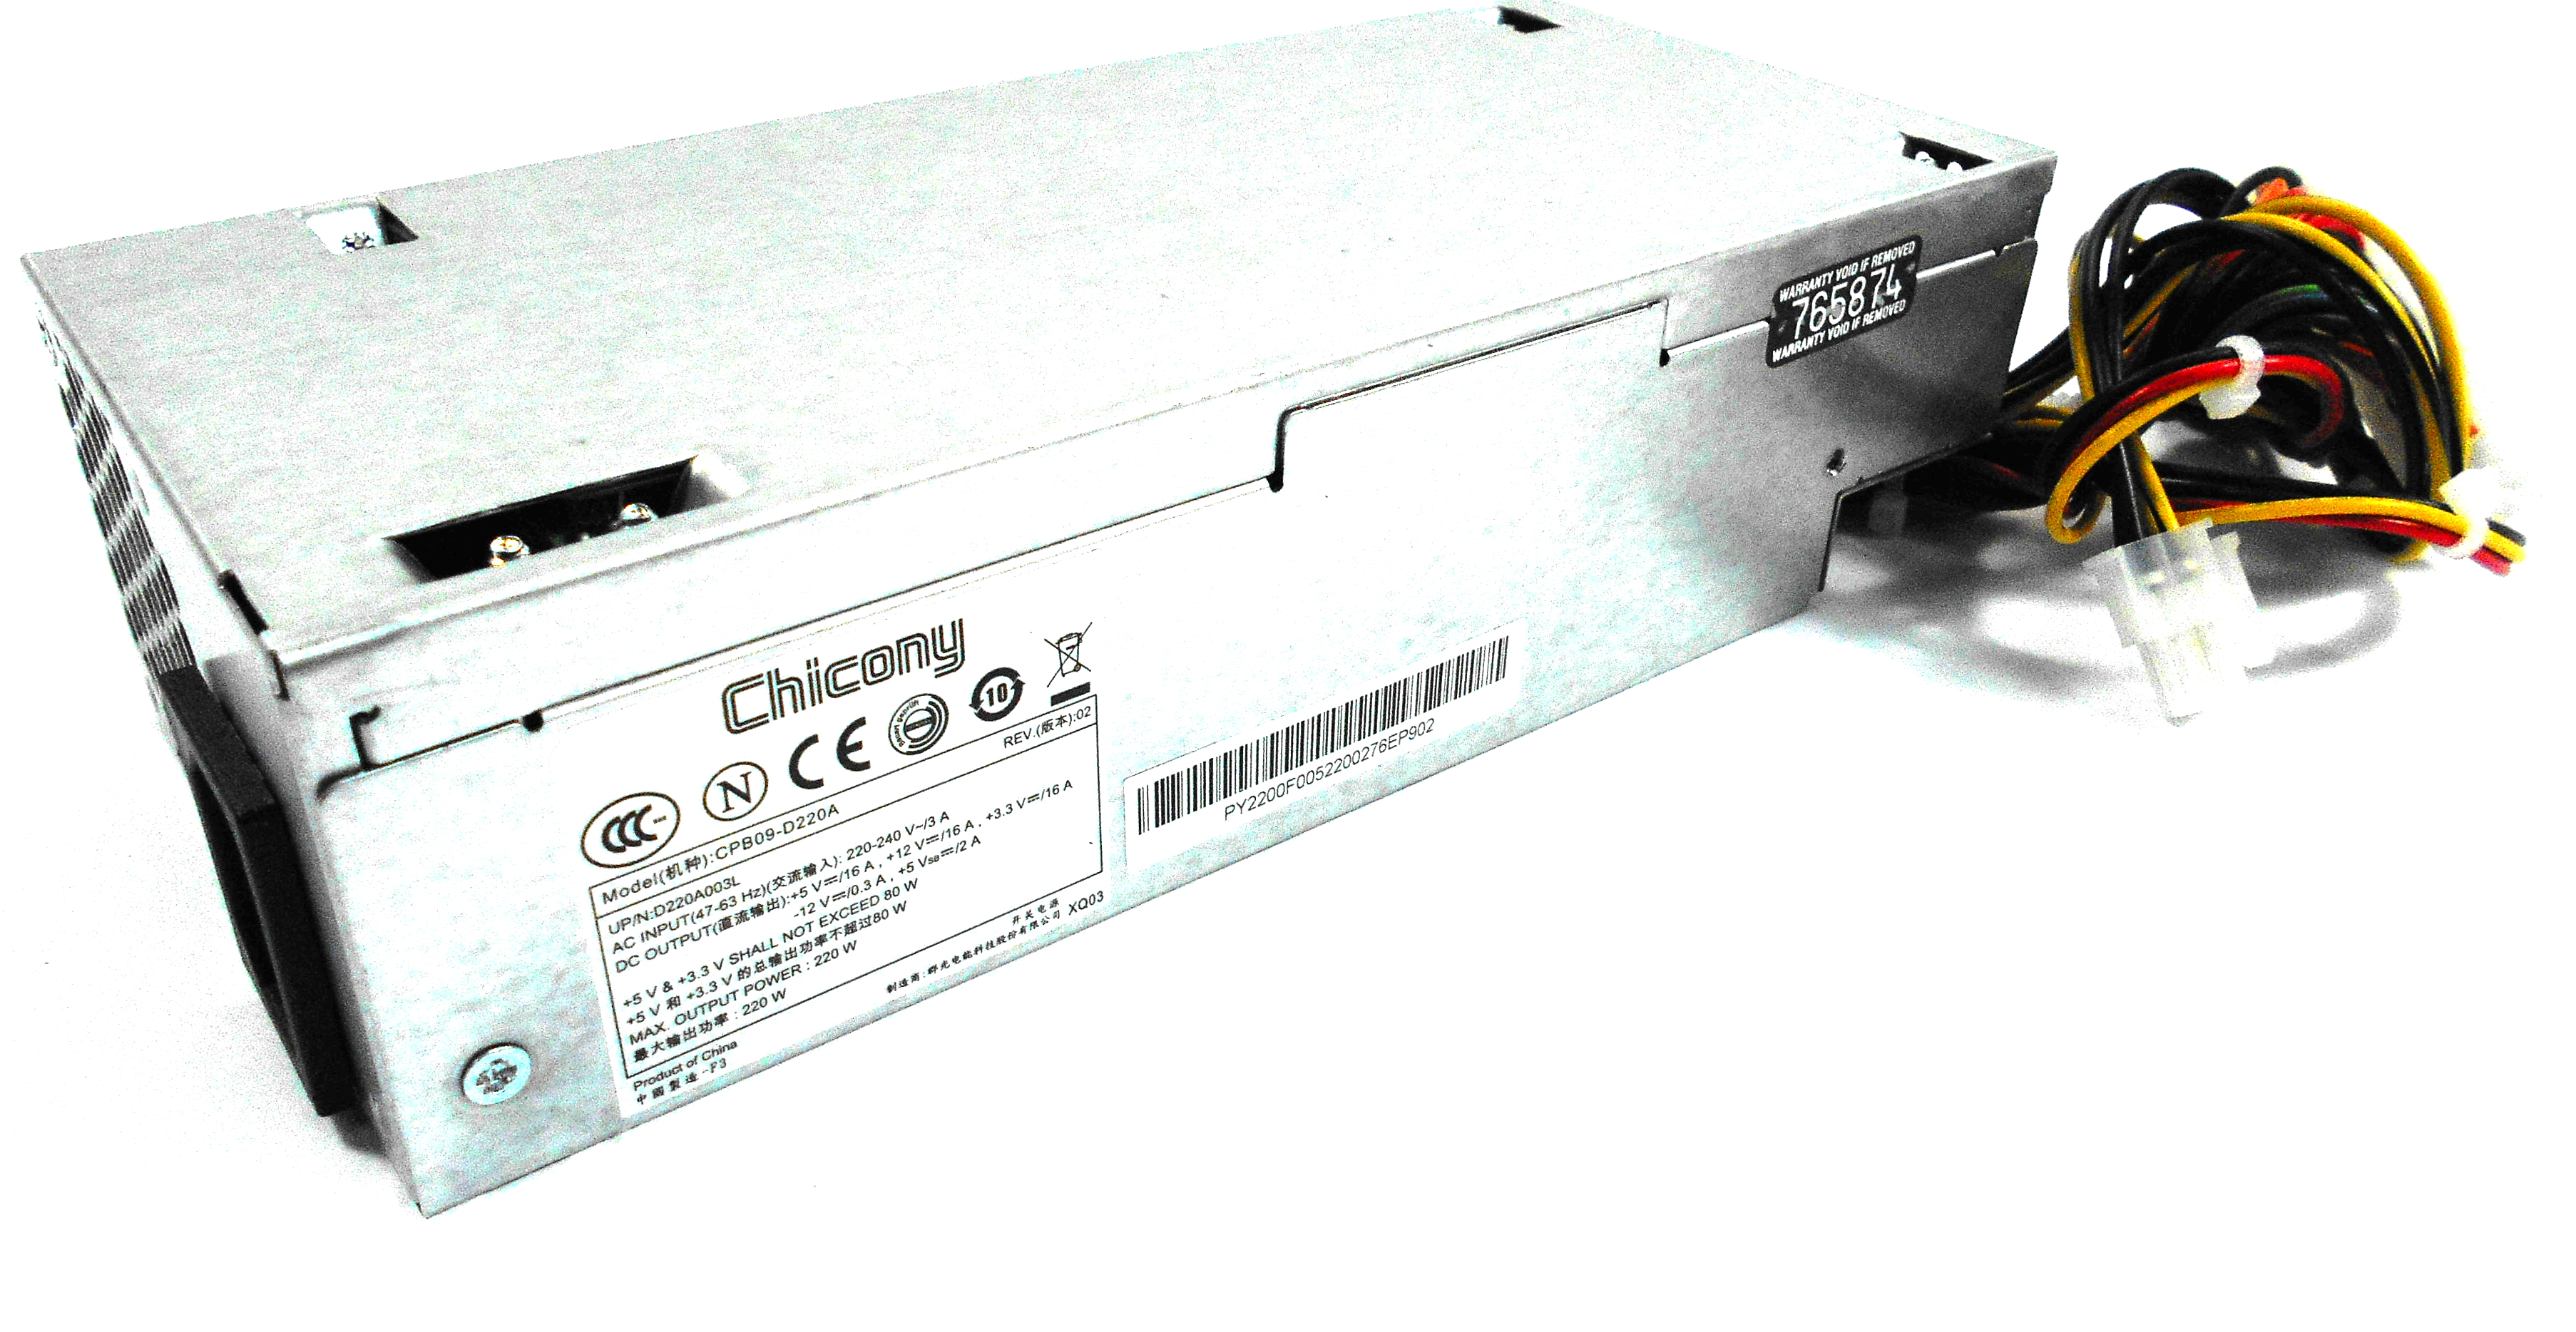 Chicony D220A003L Model:CPB09-D220A 220W Power Supply